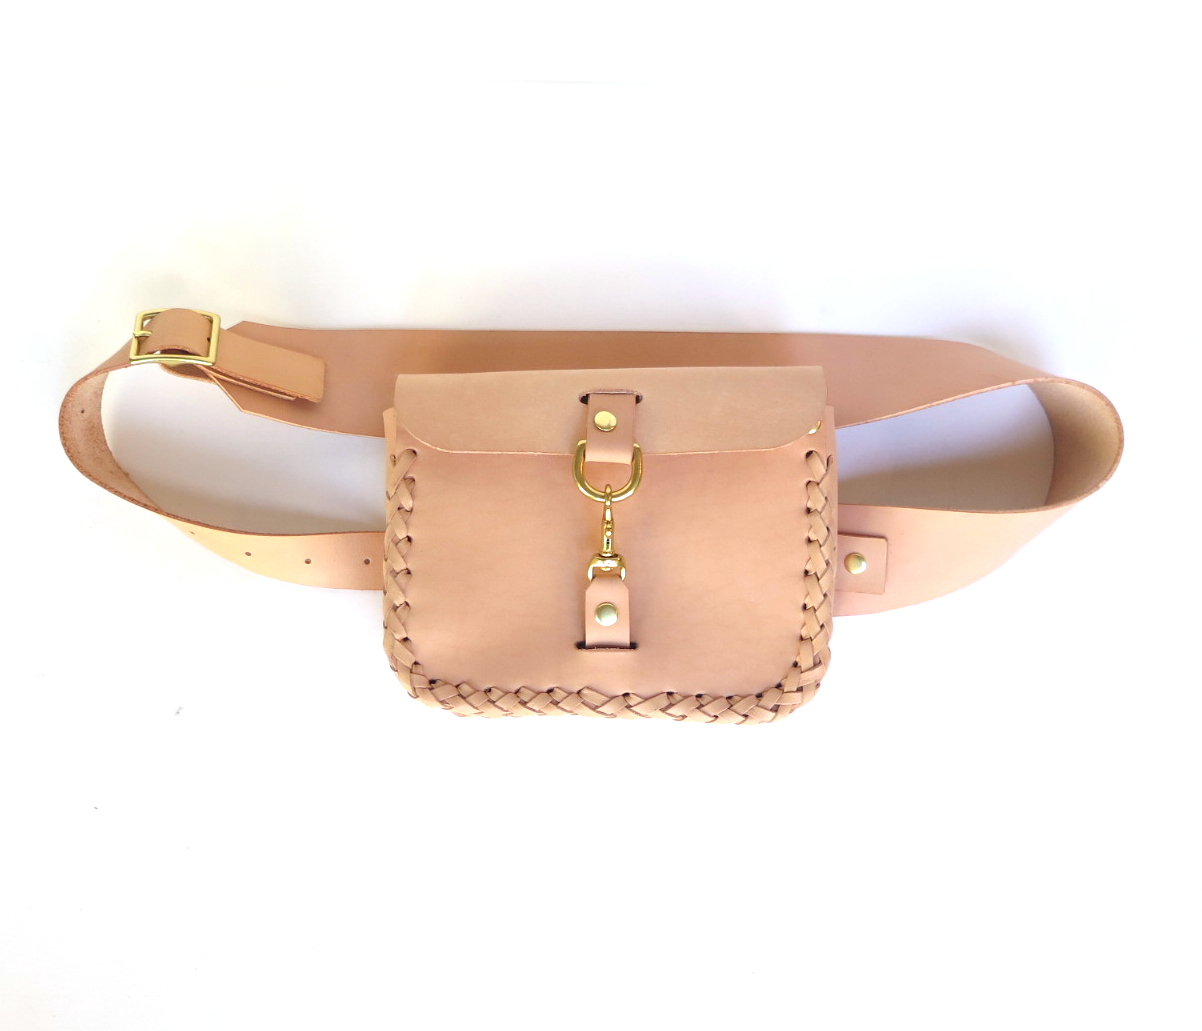 Leather belt bag fanny pack in nude leather by mary savel.png